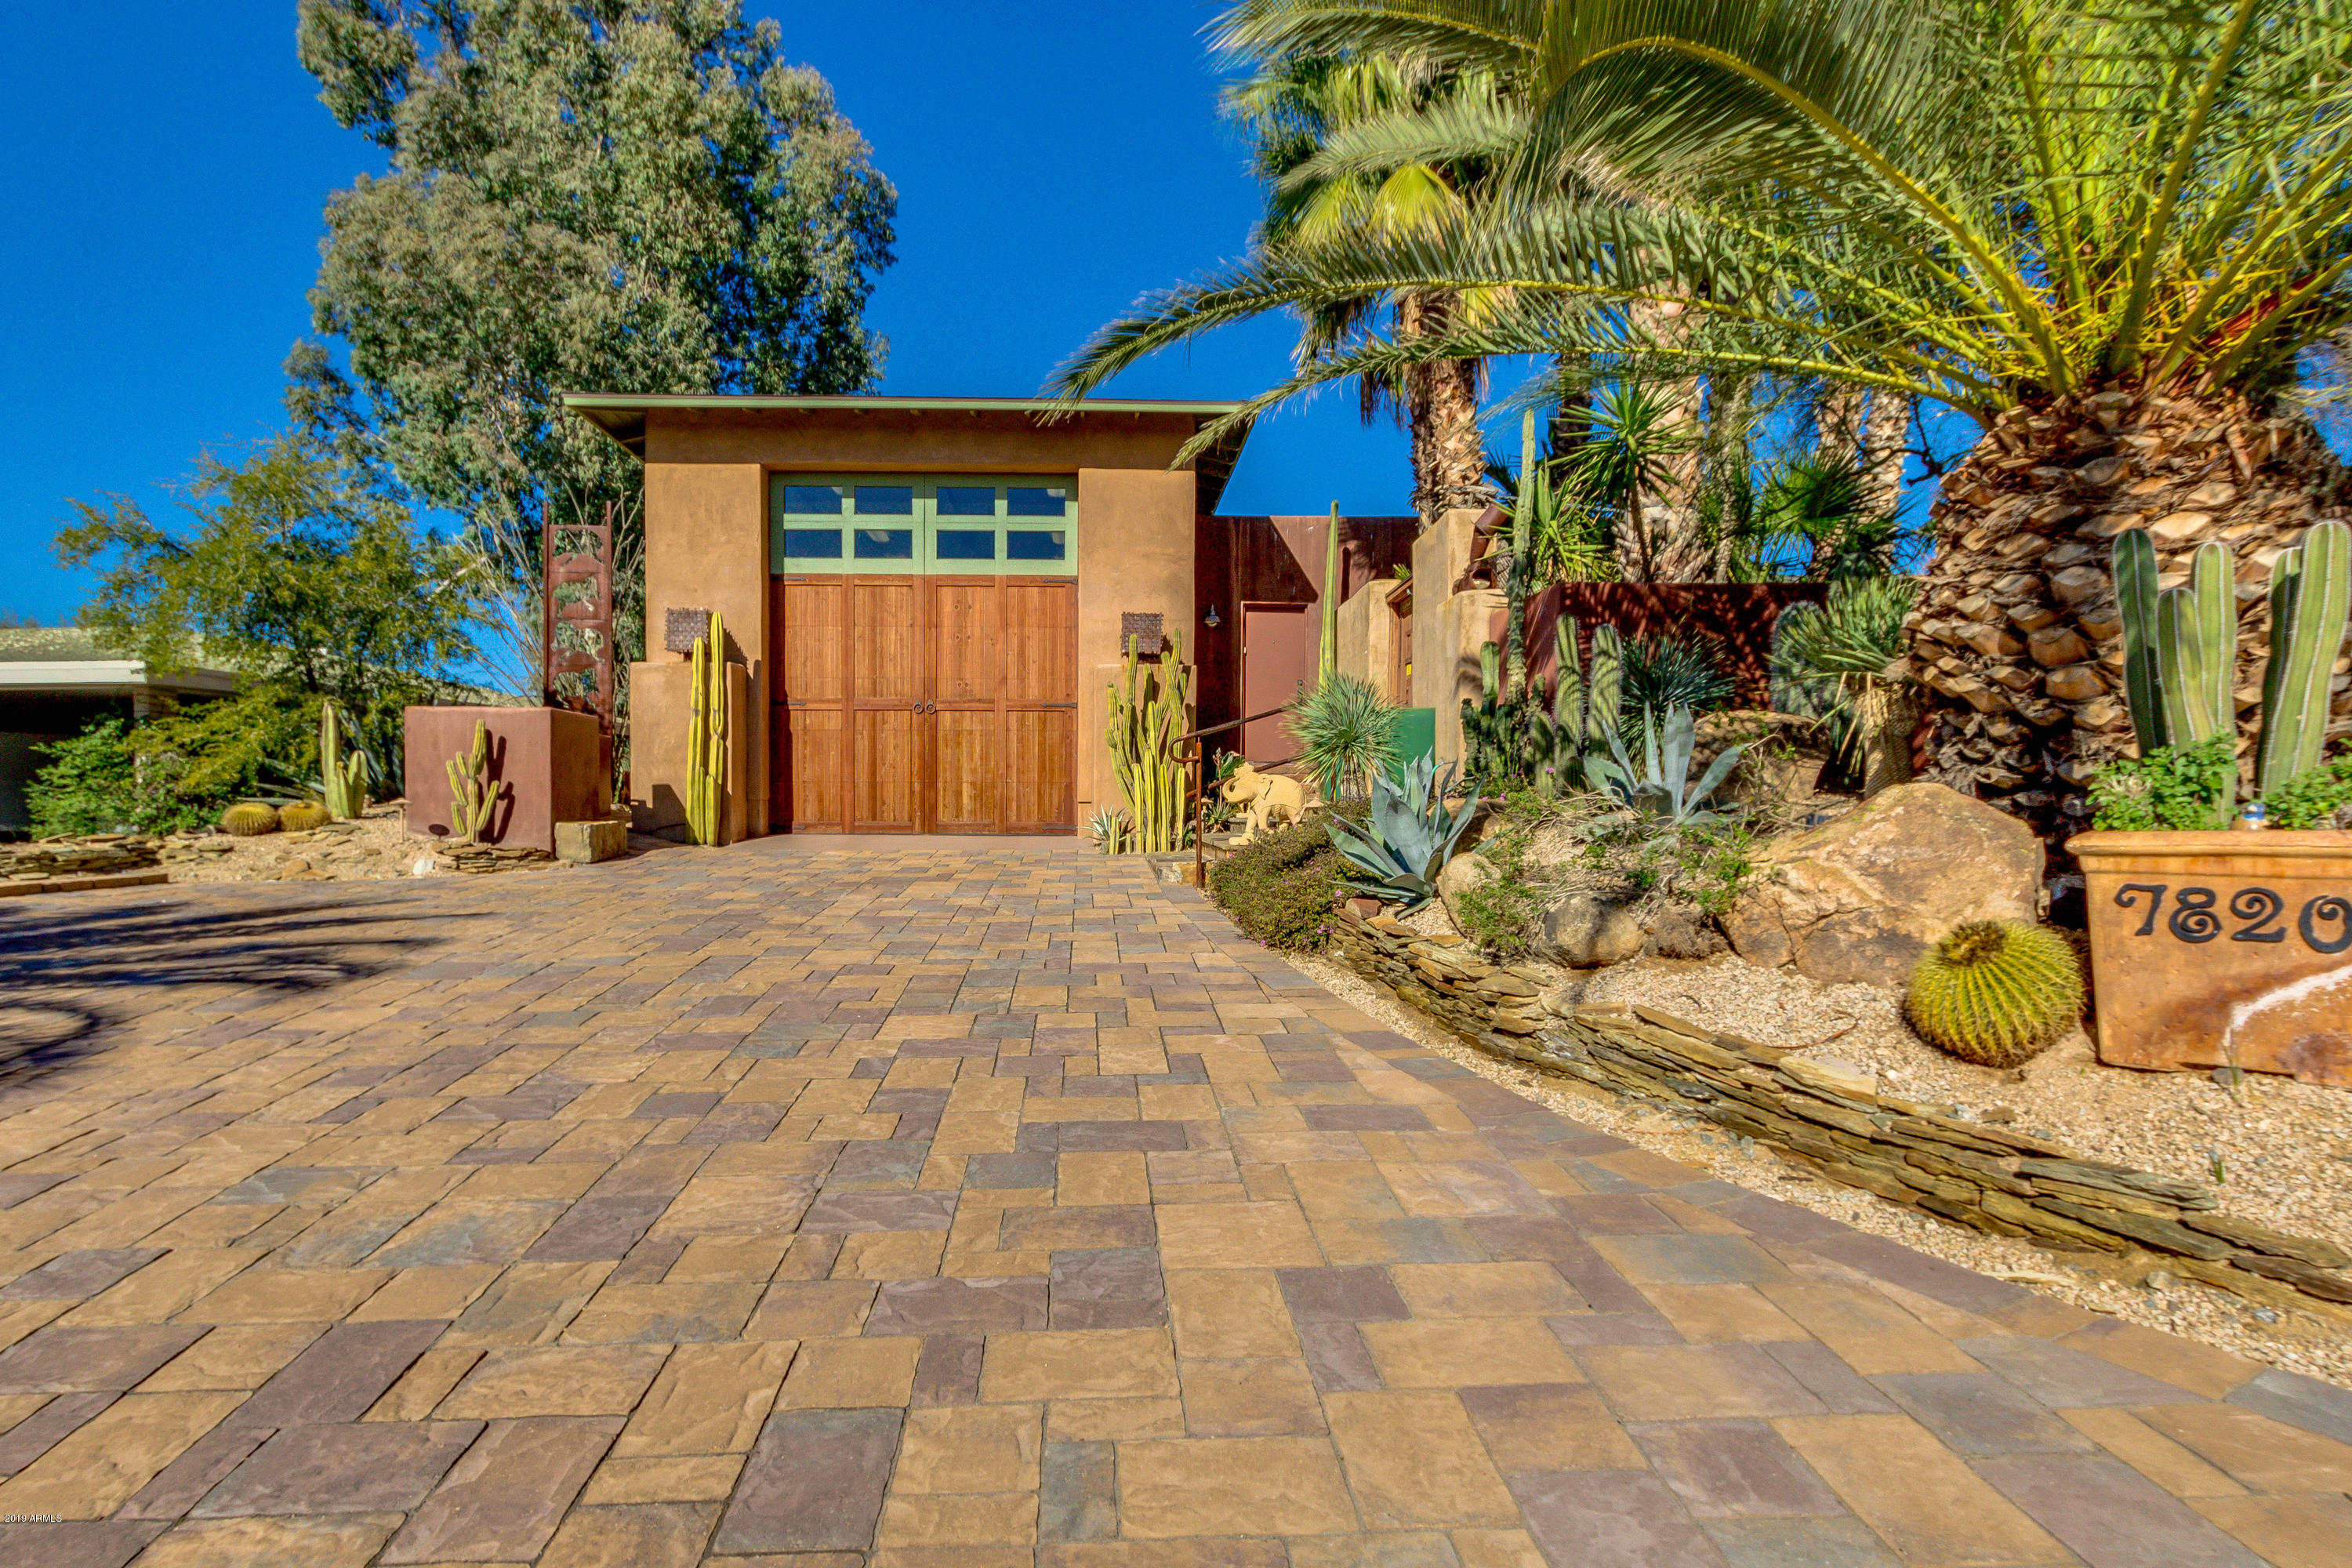 Photo of 7820 E RAMBLING Road, Carefree, AZ 85377